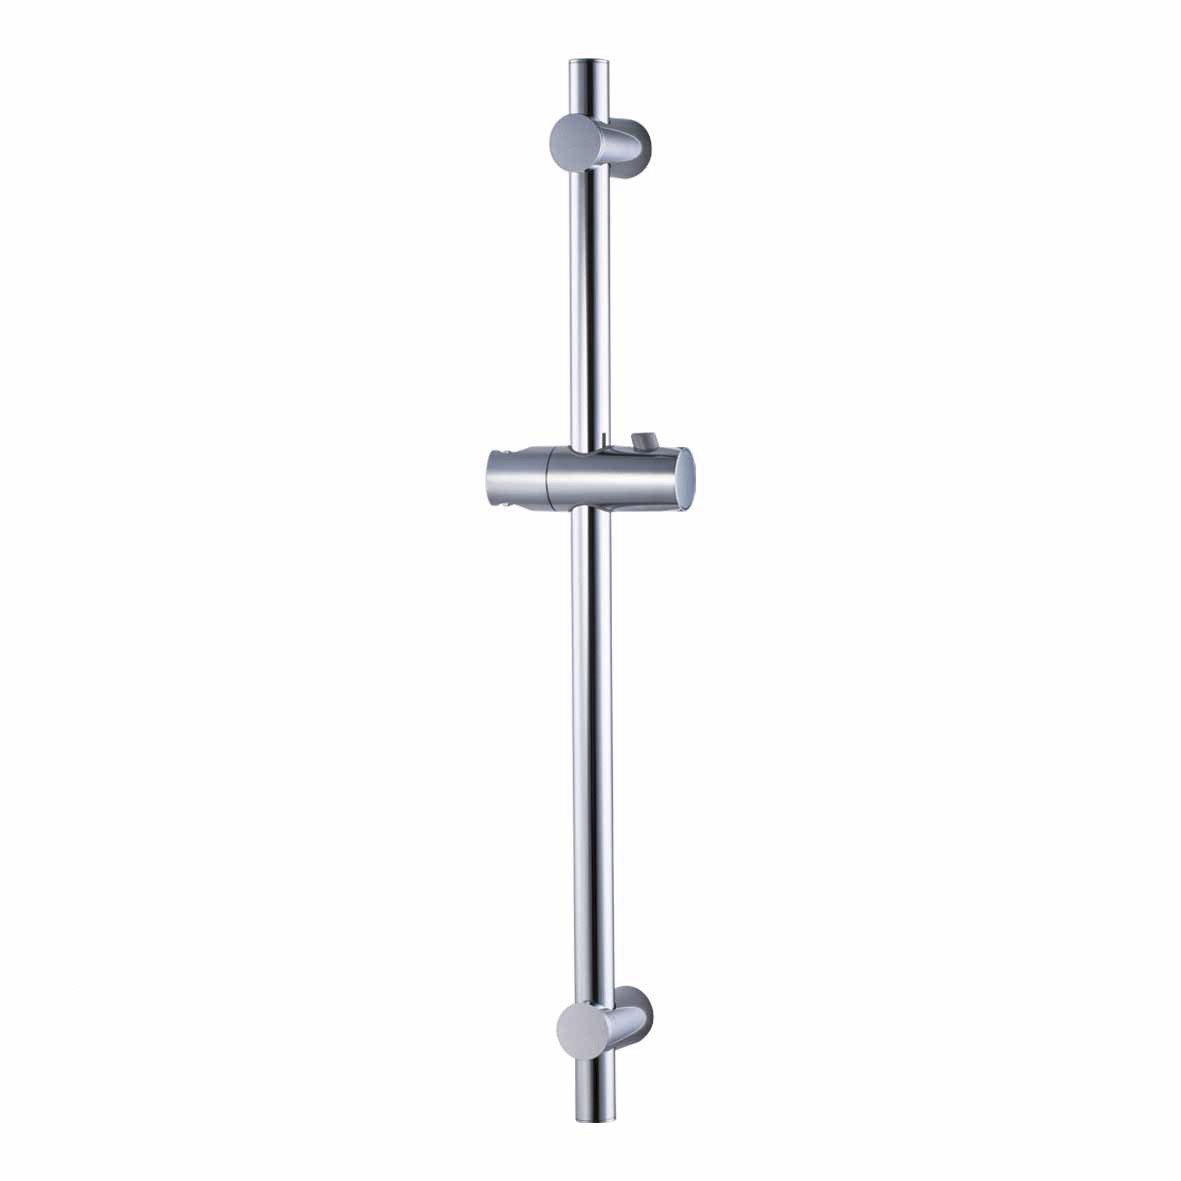 Barre de douche, chrome, SENSEA Ikka